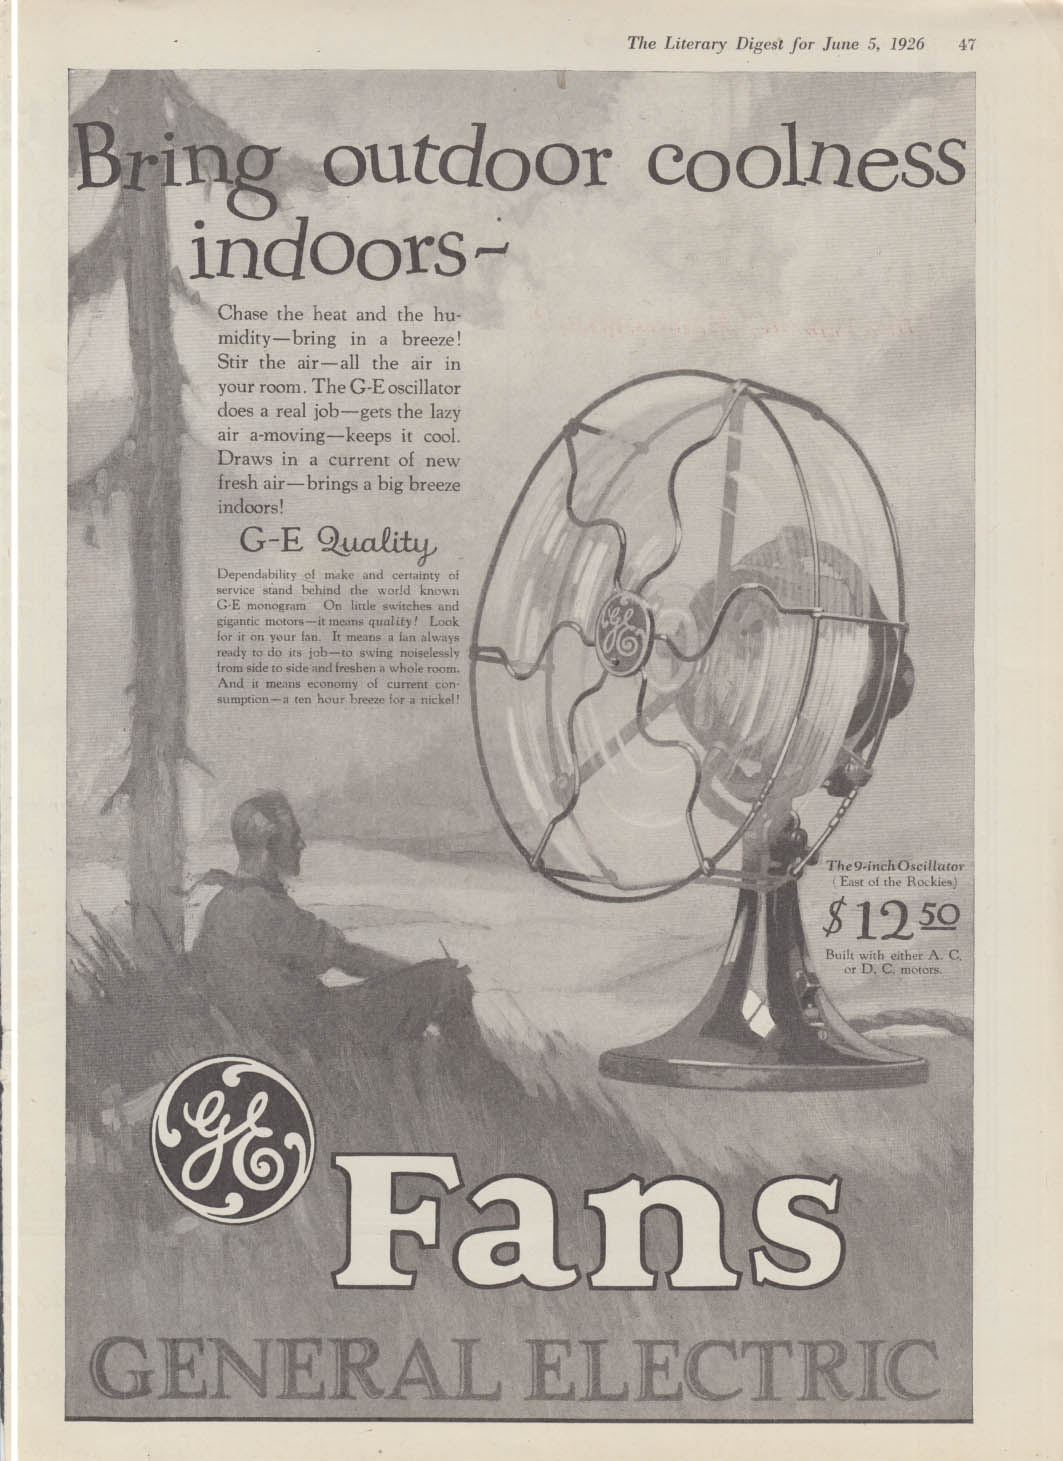 Bring outdoor coolness indoors - General electric Fans ad 1926